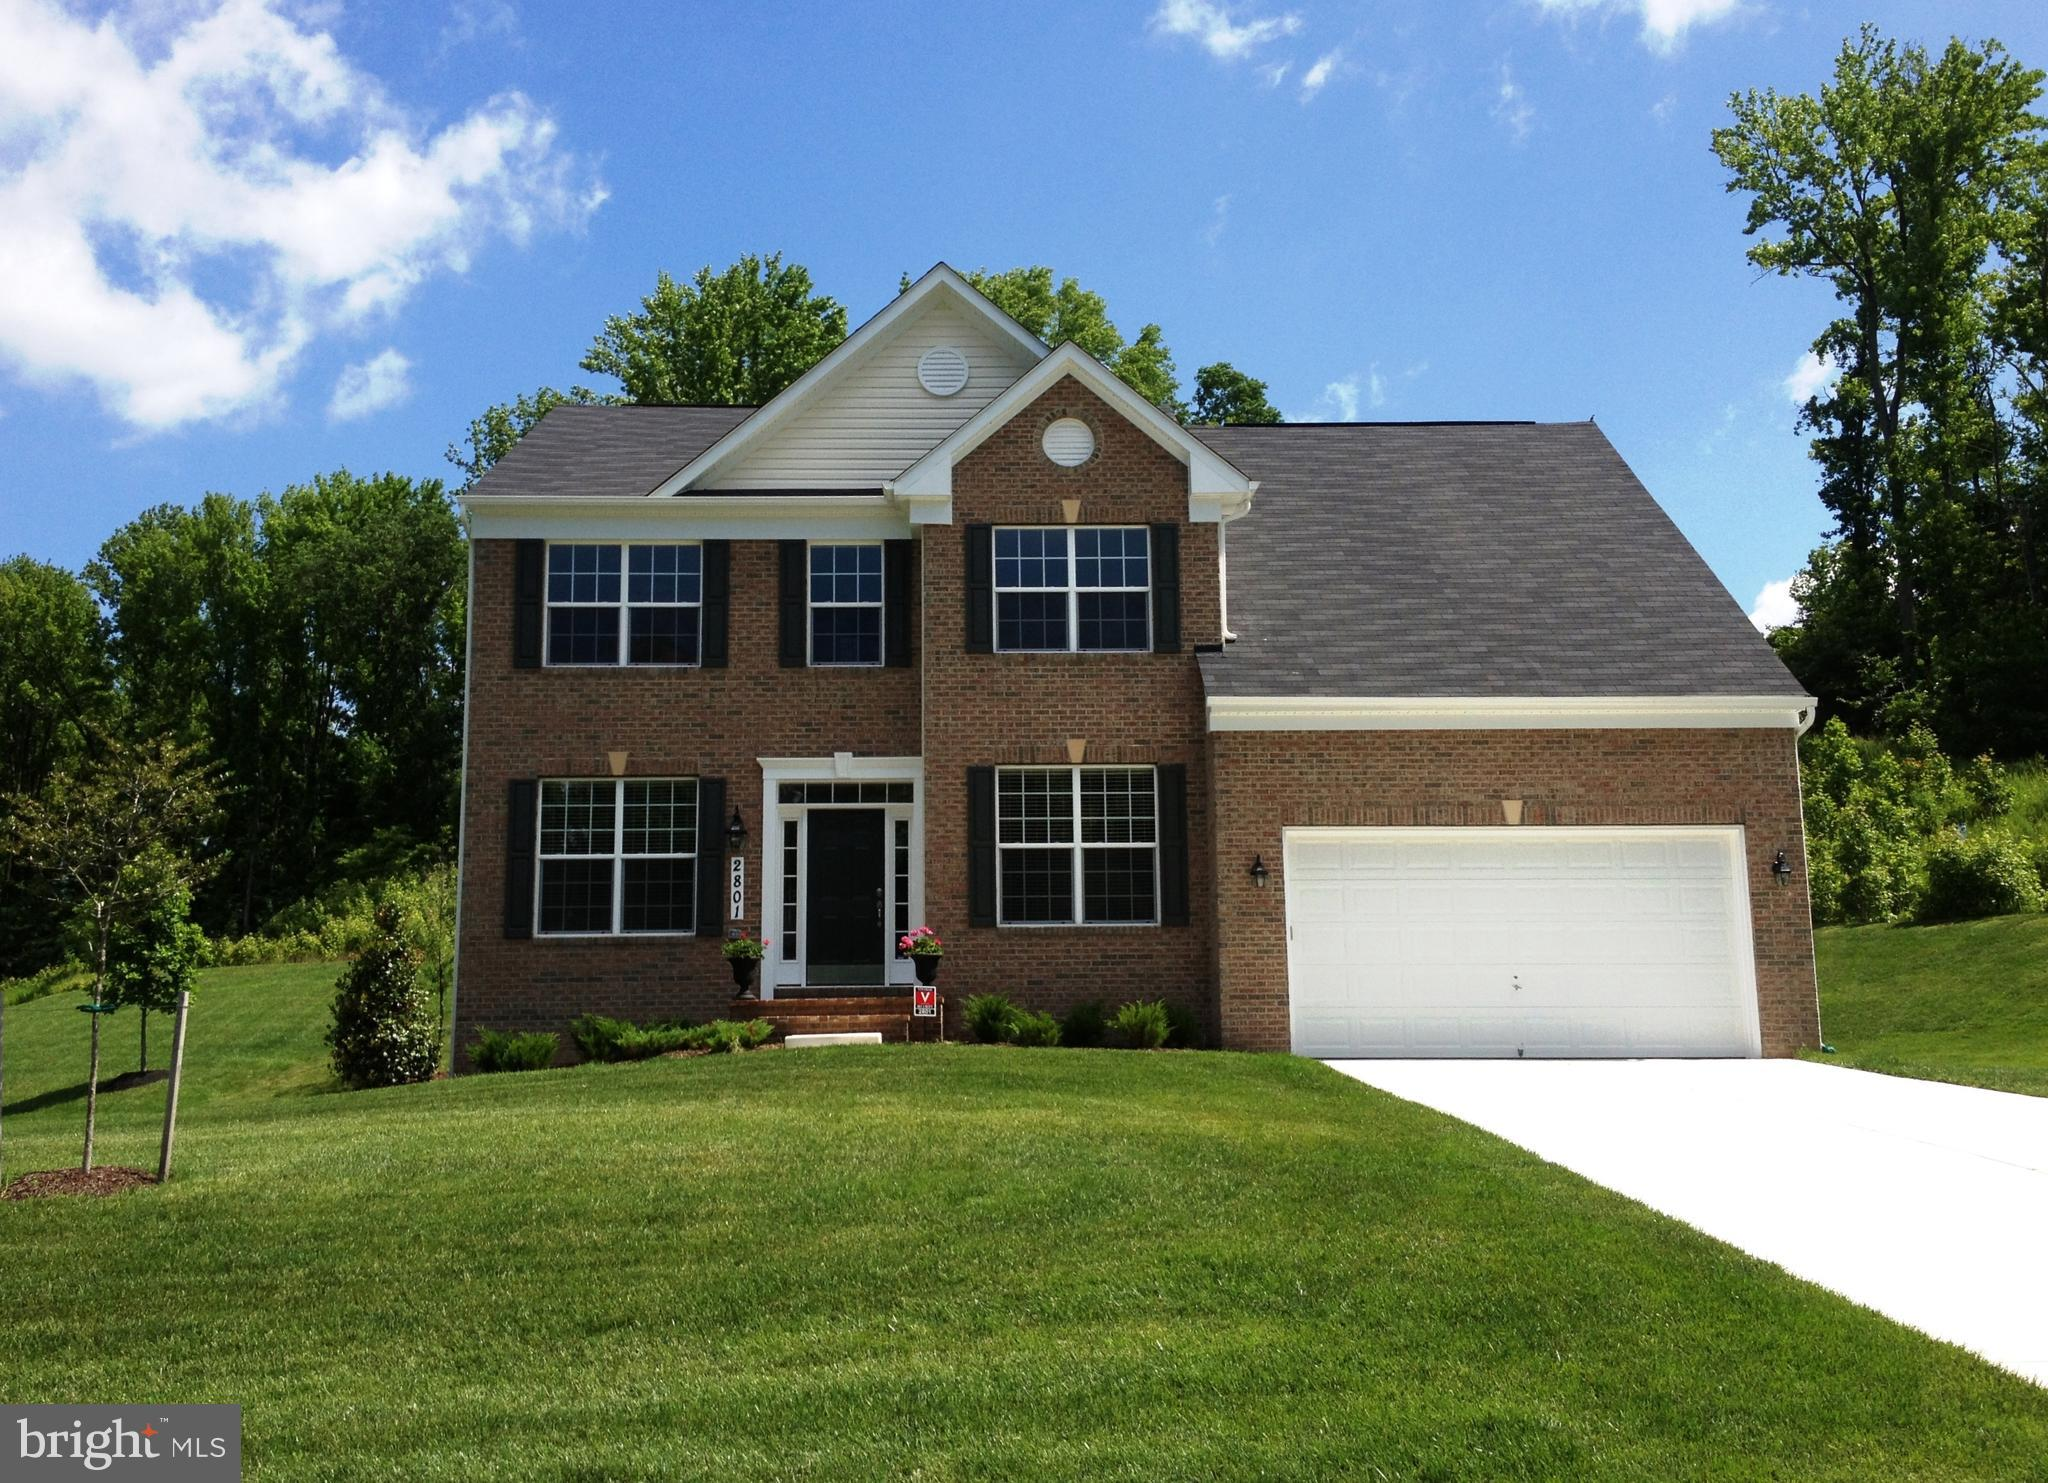 25826 S SANDGATES ROAD, MECHANICSVILLE, MD 20659